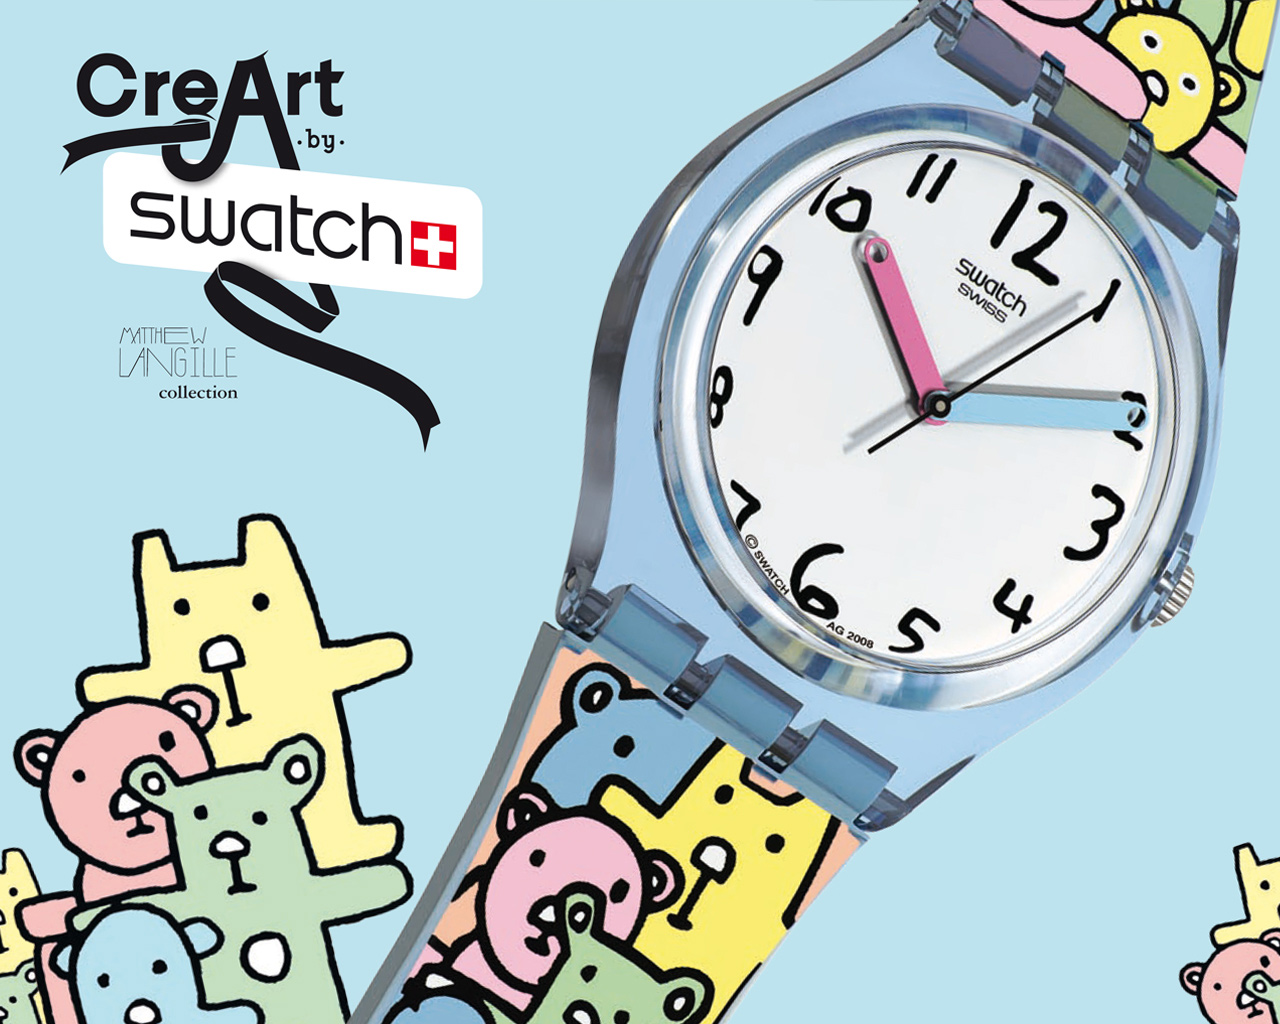 CreArt_by_Swatch_-_Matthew_Langille_Collection